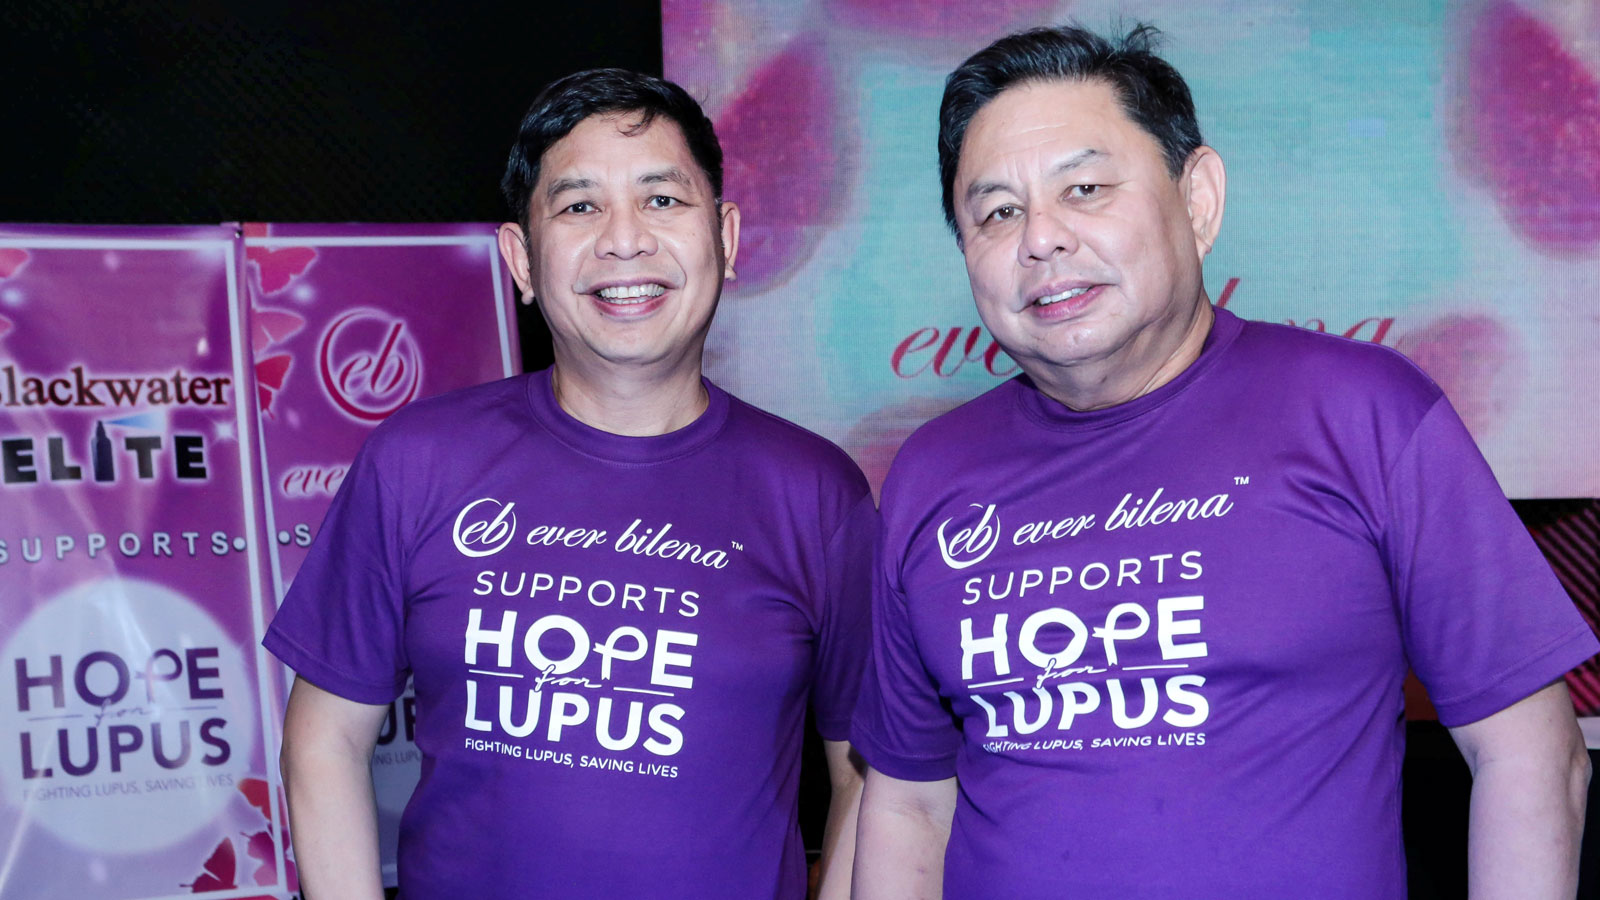 Hope for Lupus Run on January 21